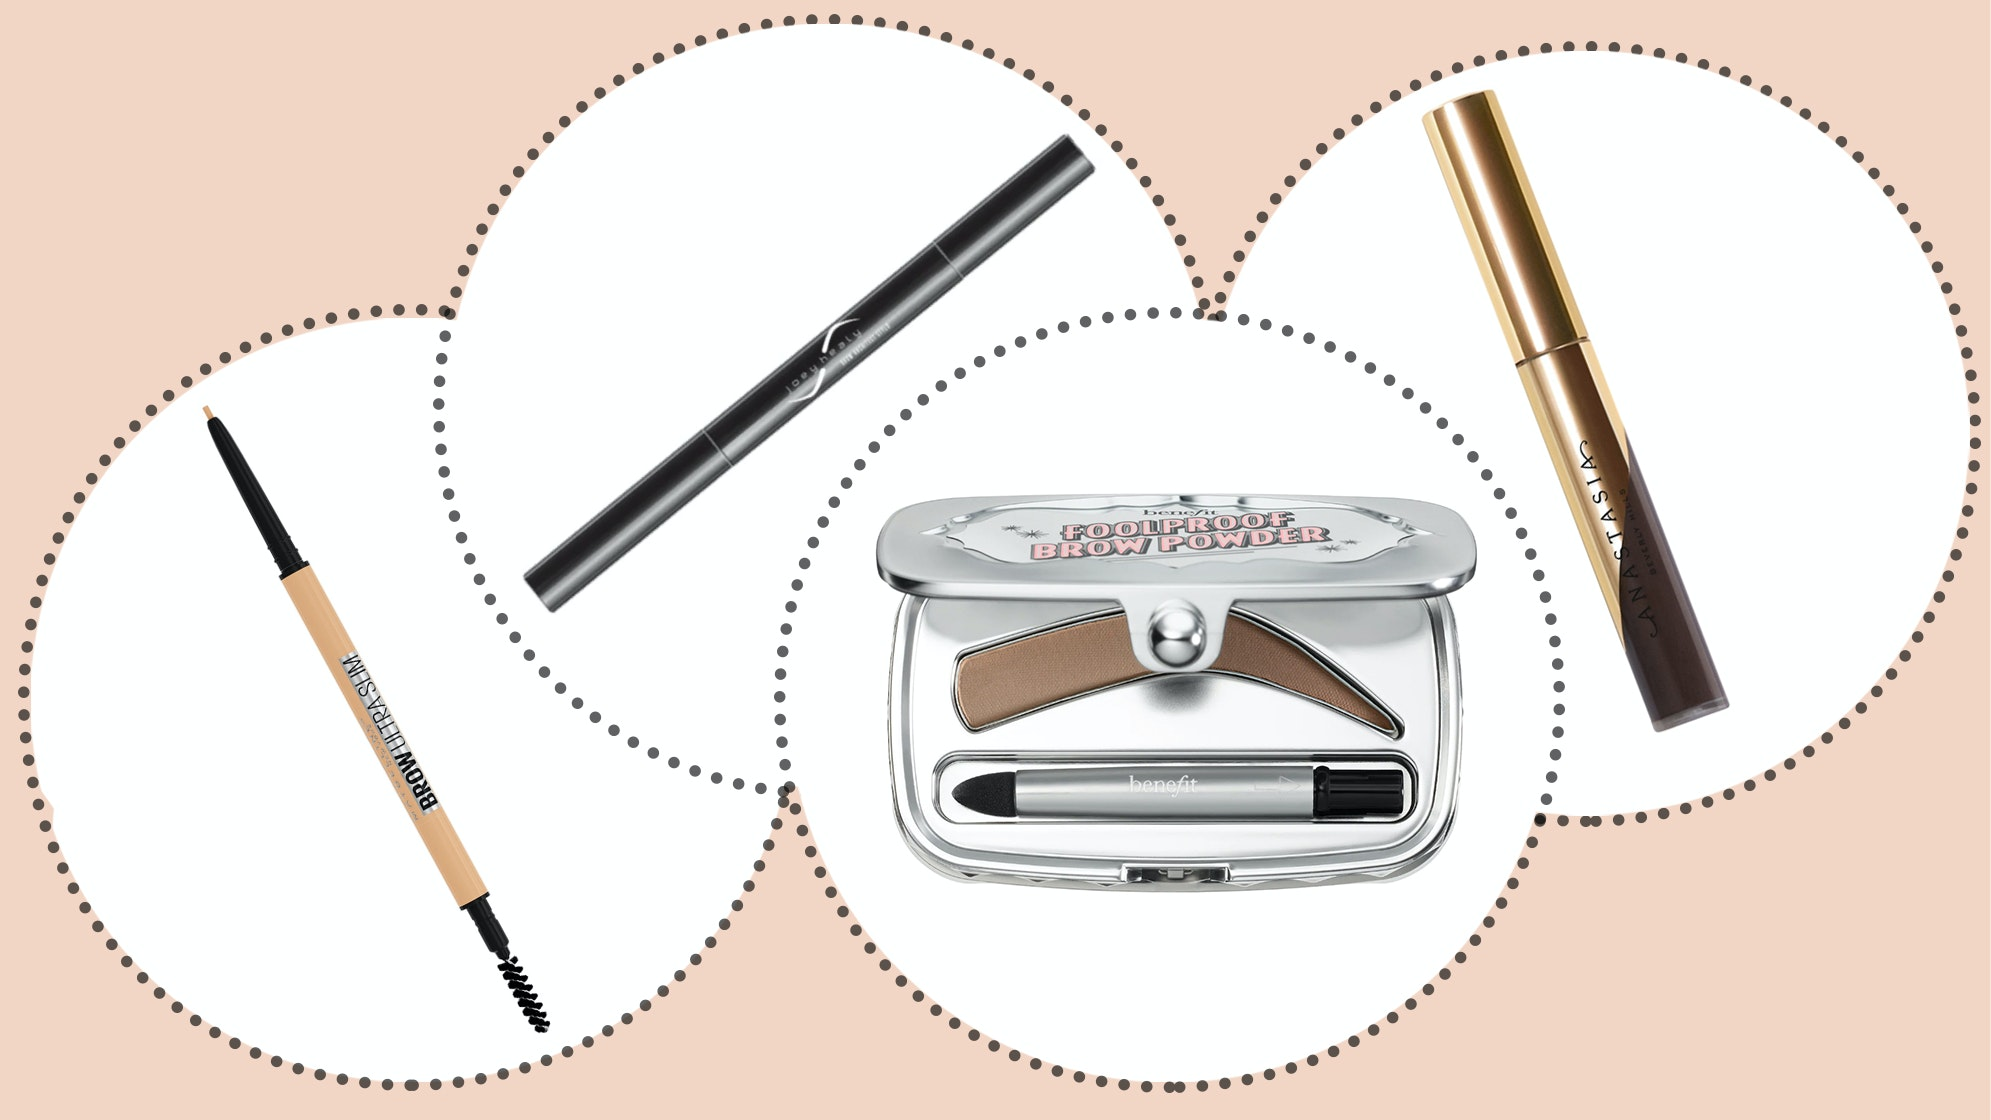 how to shape eyebrows with eyebrow pencils and eyebrow powder